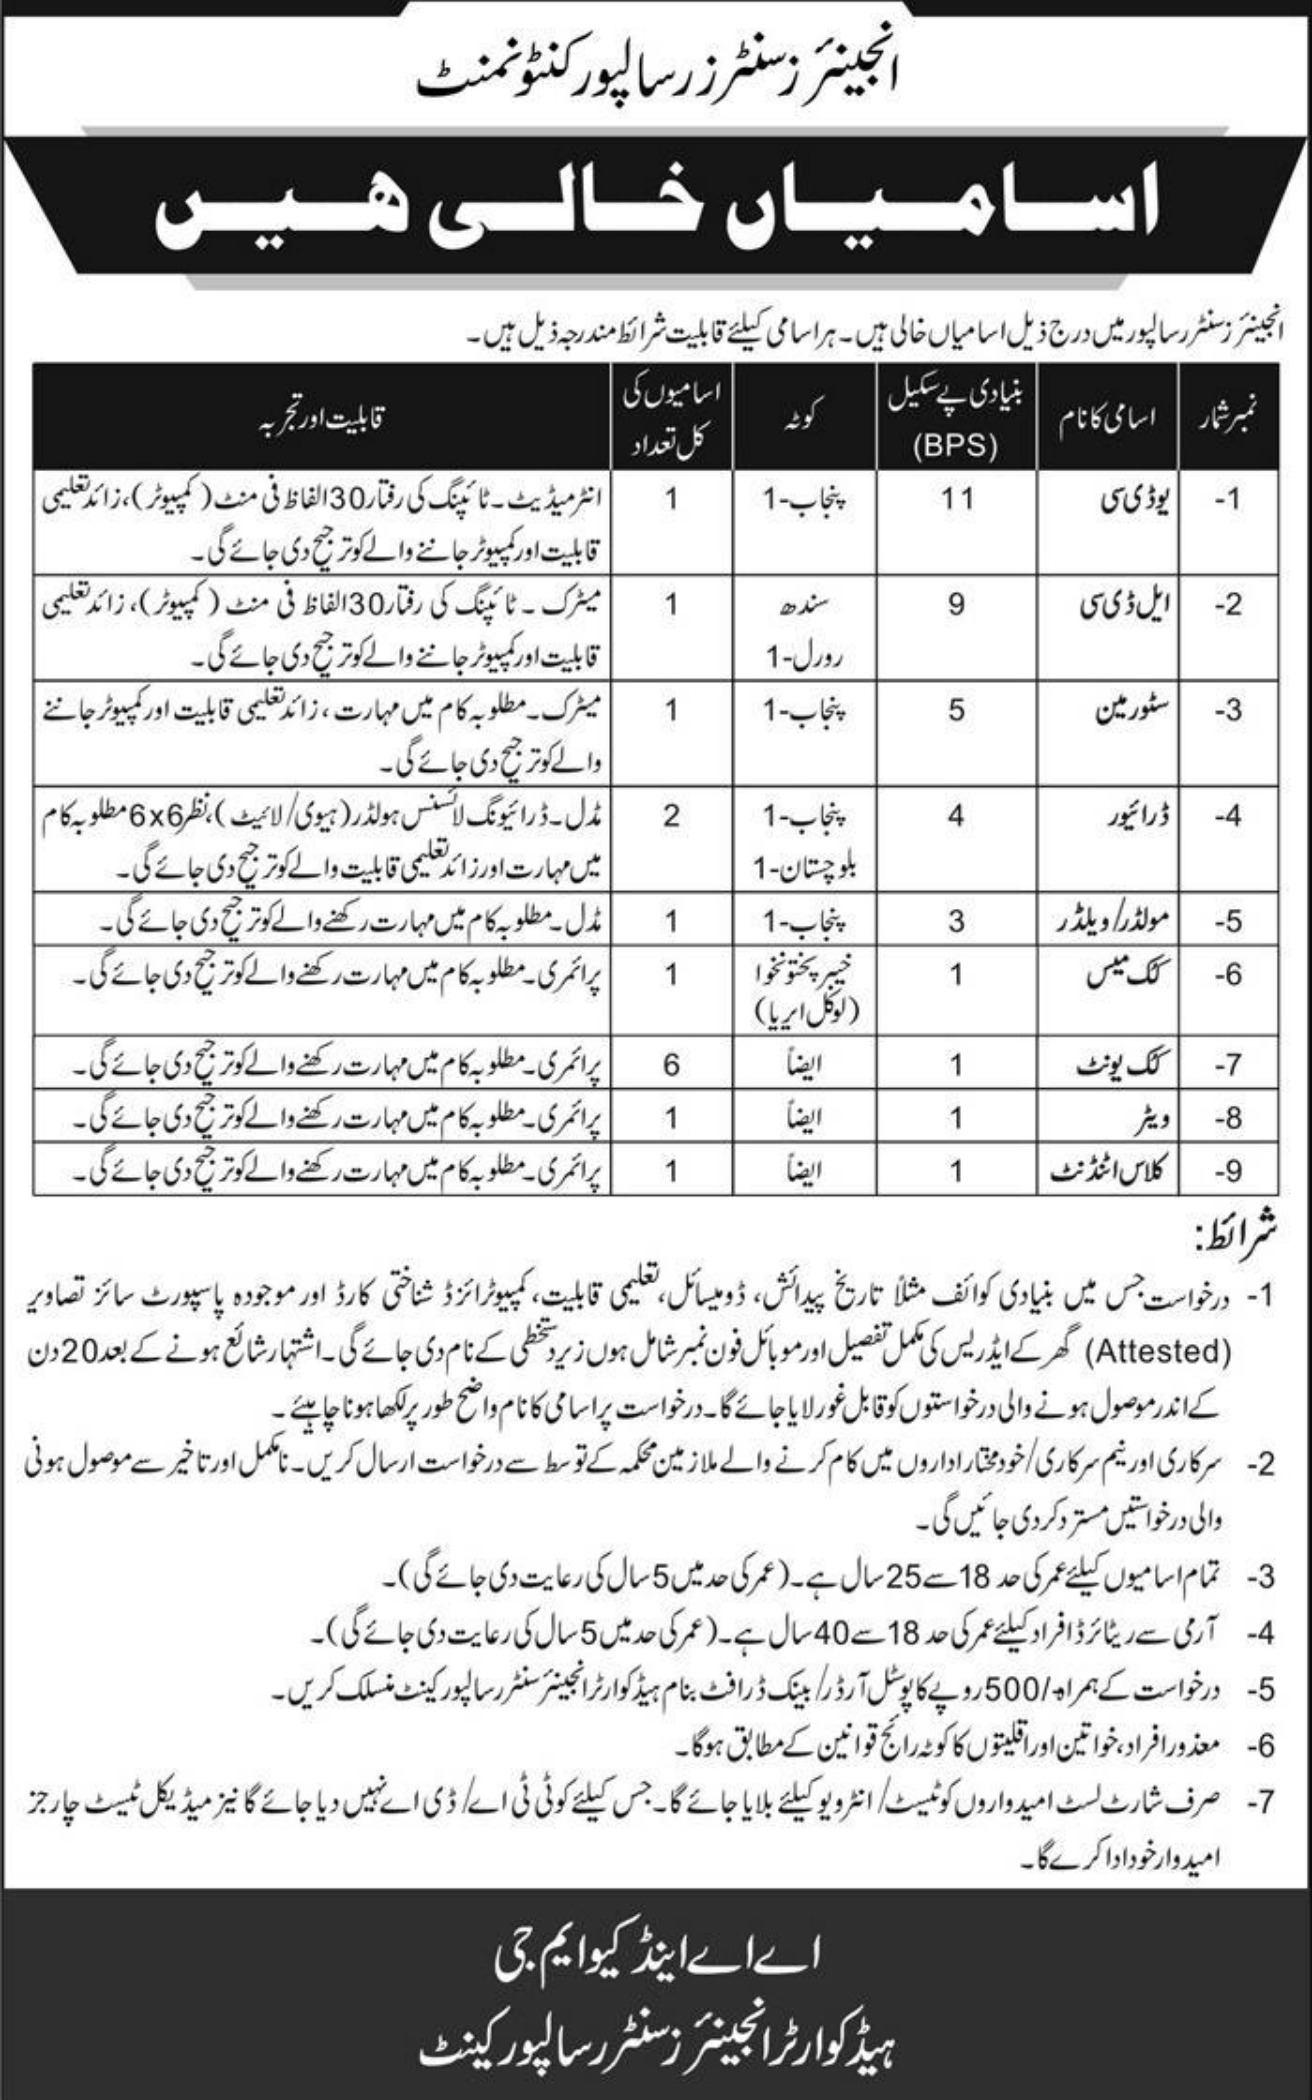 Engineers Center Risalpur Cantt Jobs 2019 Pak Army